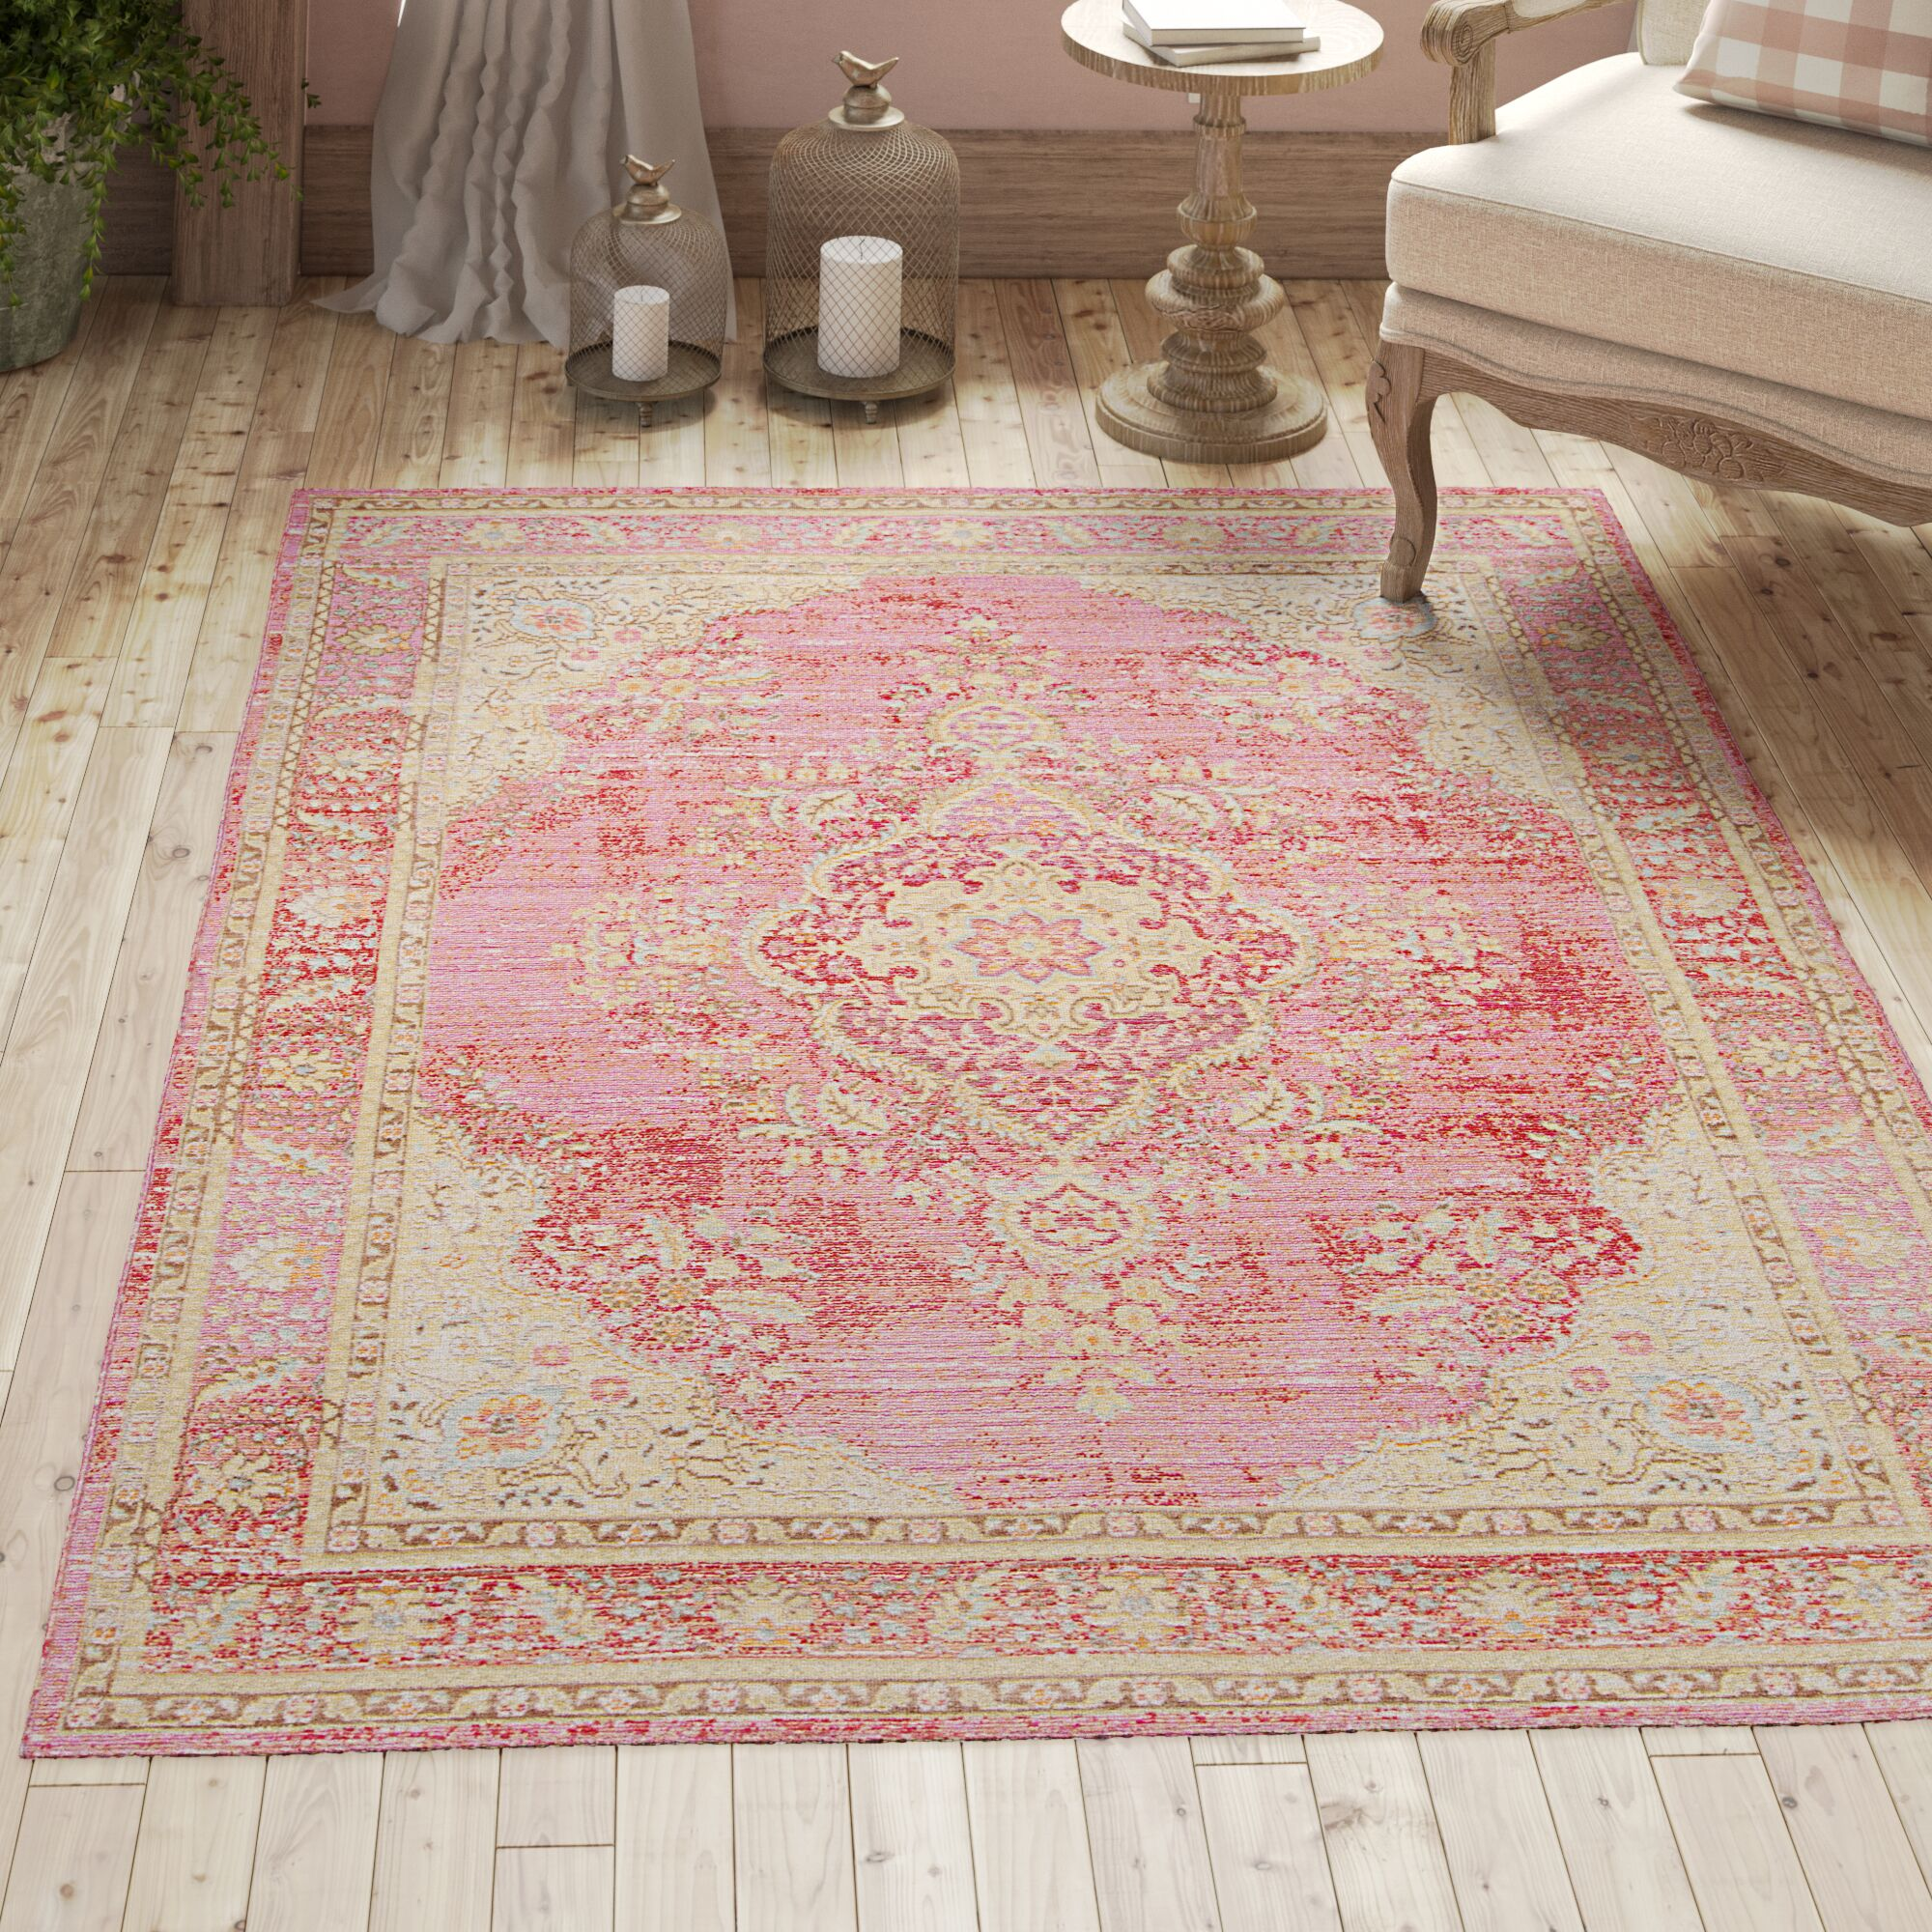 Sofian Pink Oriental Area Rug Rug Size: Rectangle 5'3